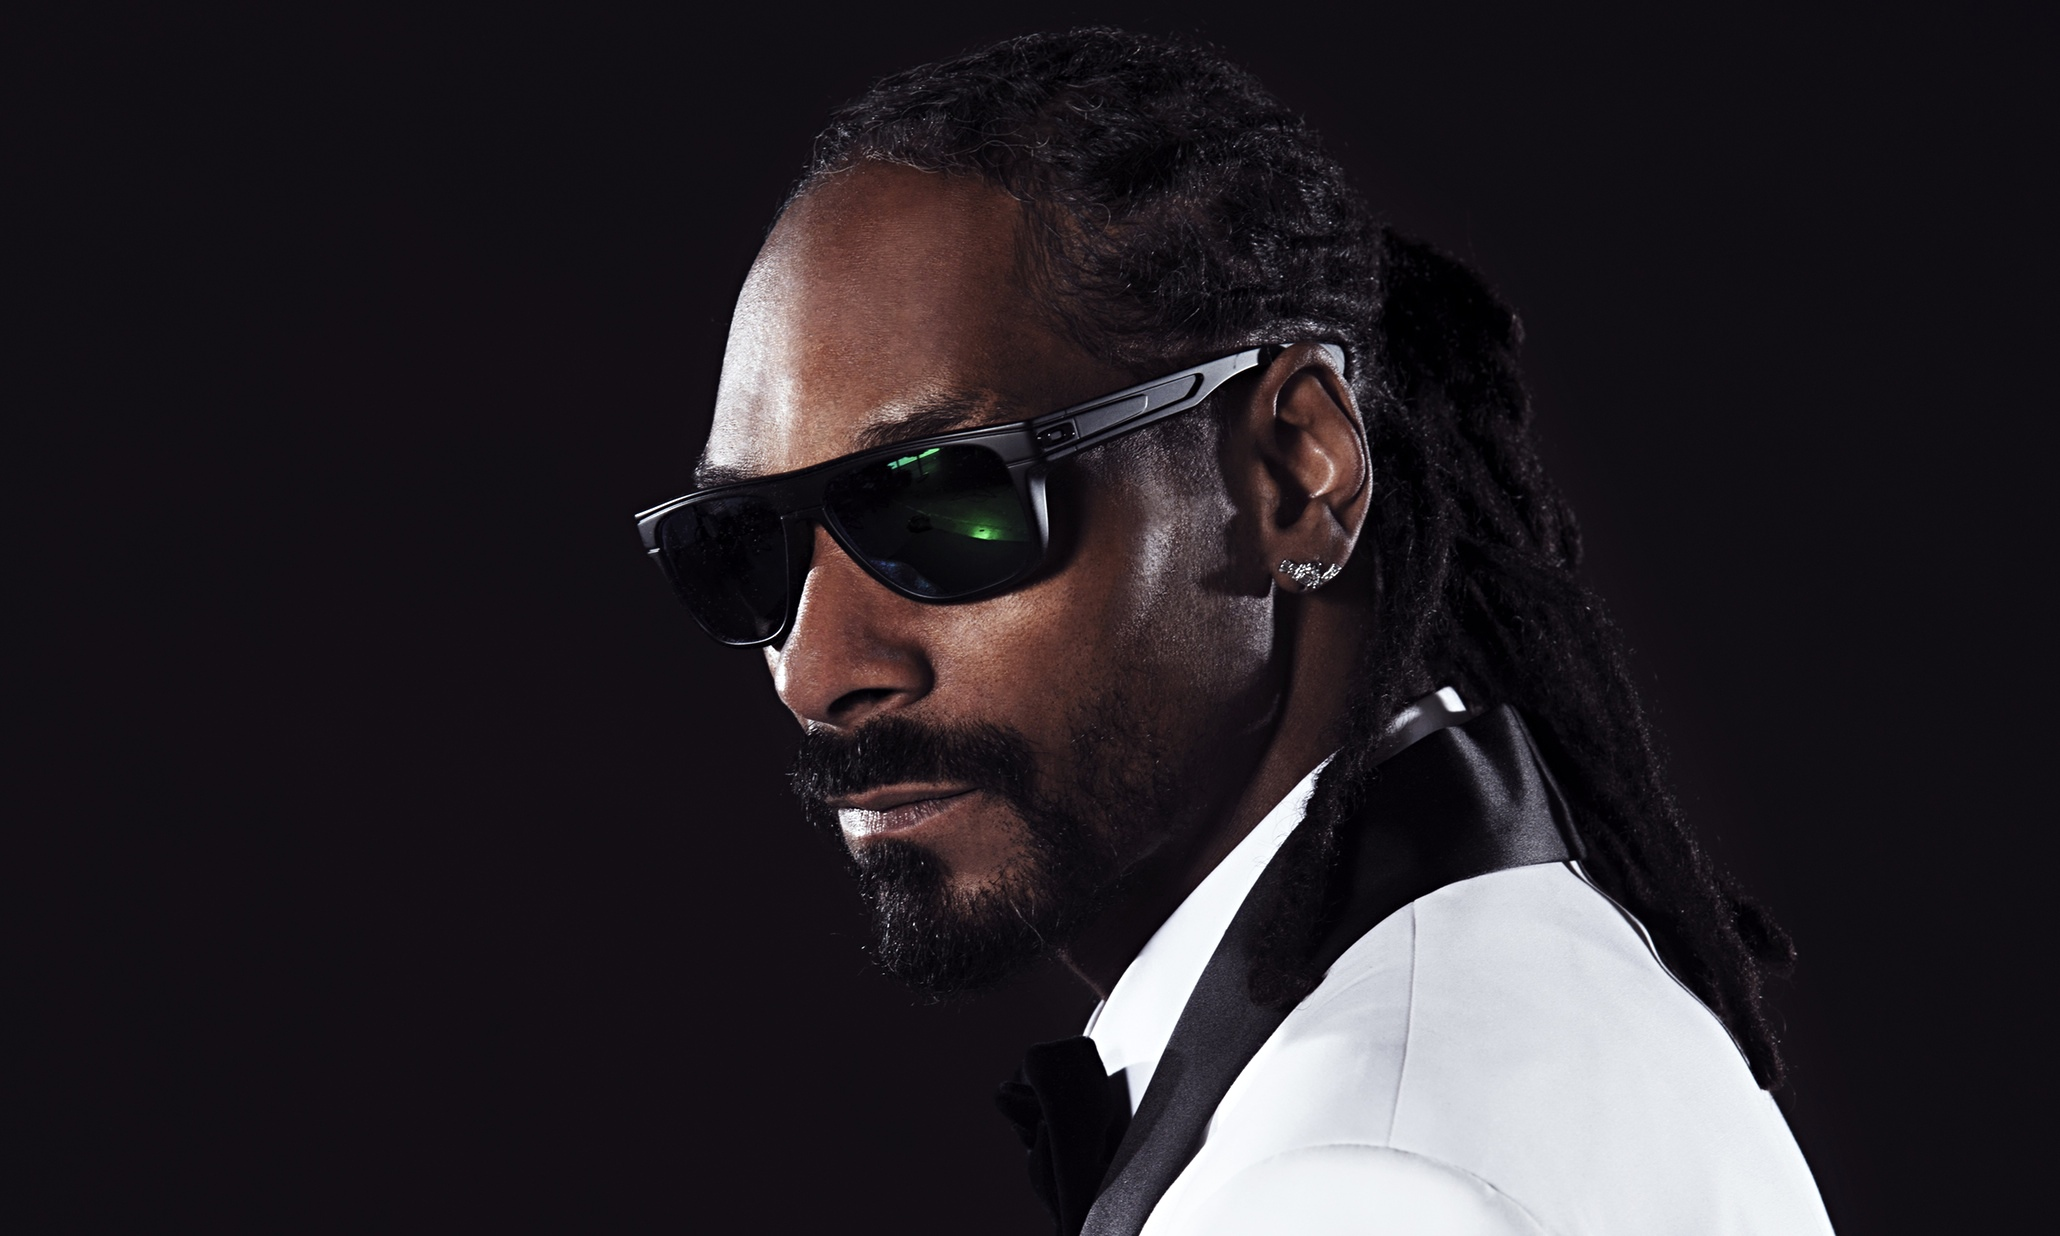 snoop dogg celebrity hd wallpaper 59941